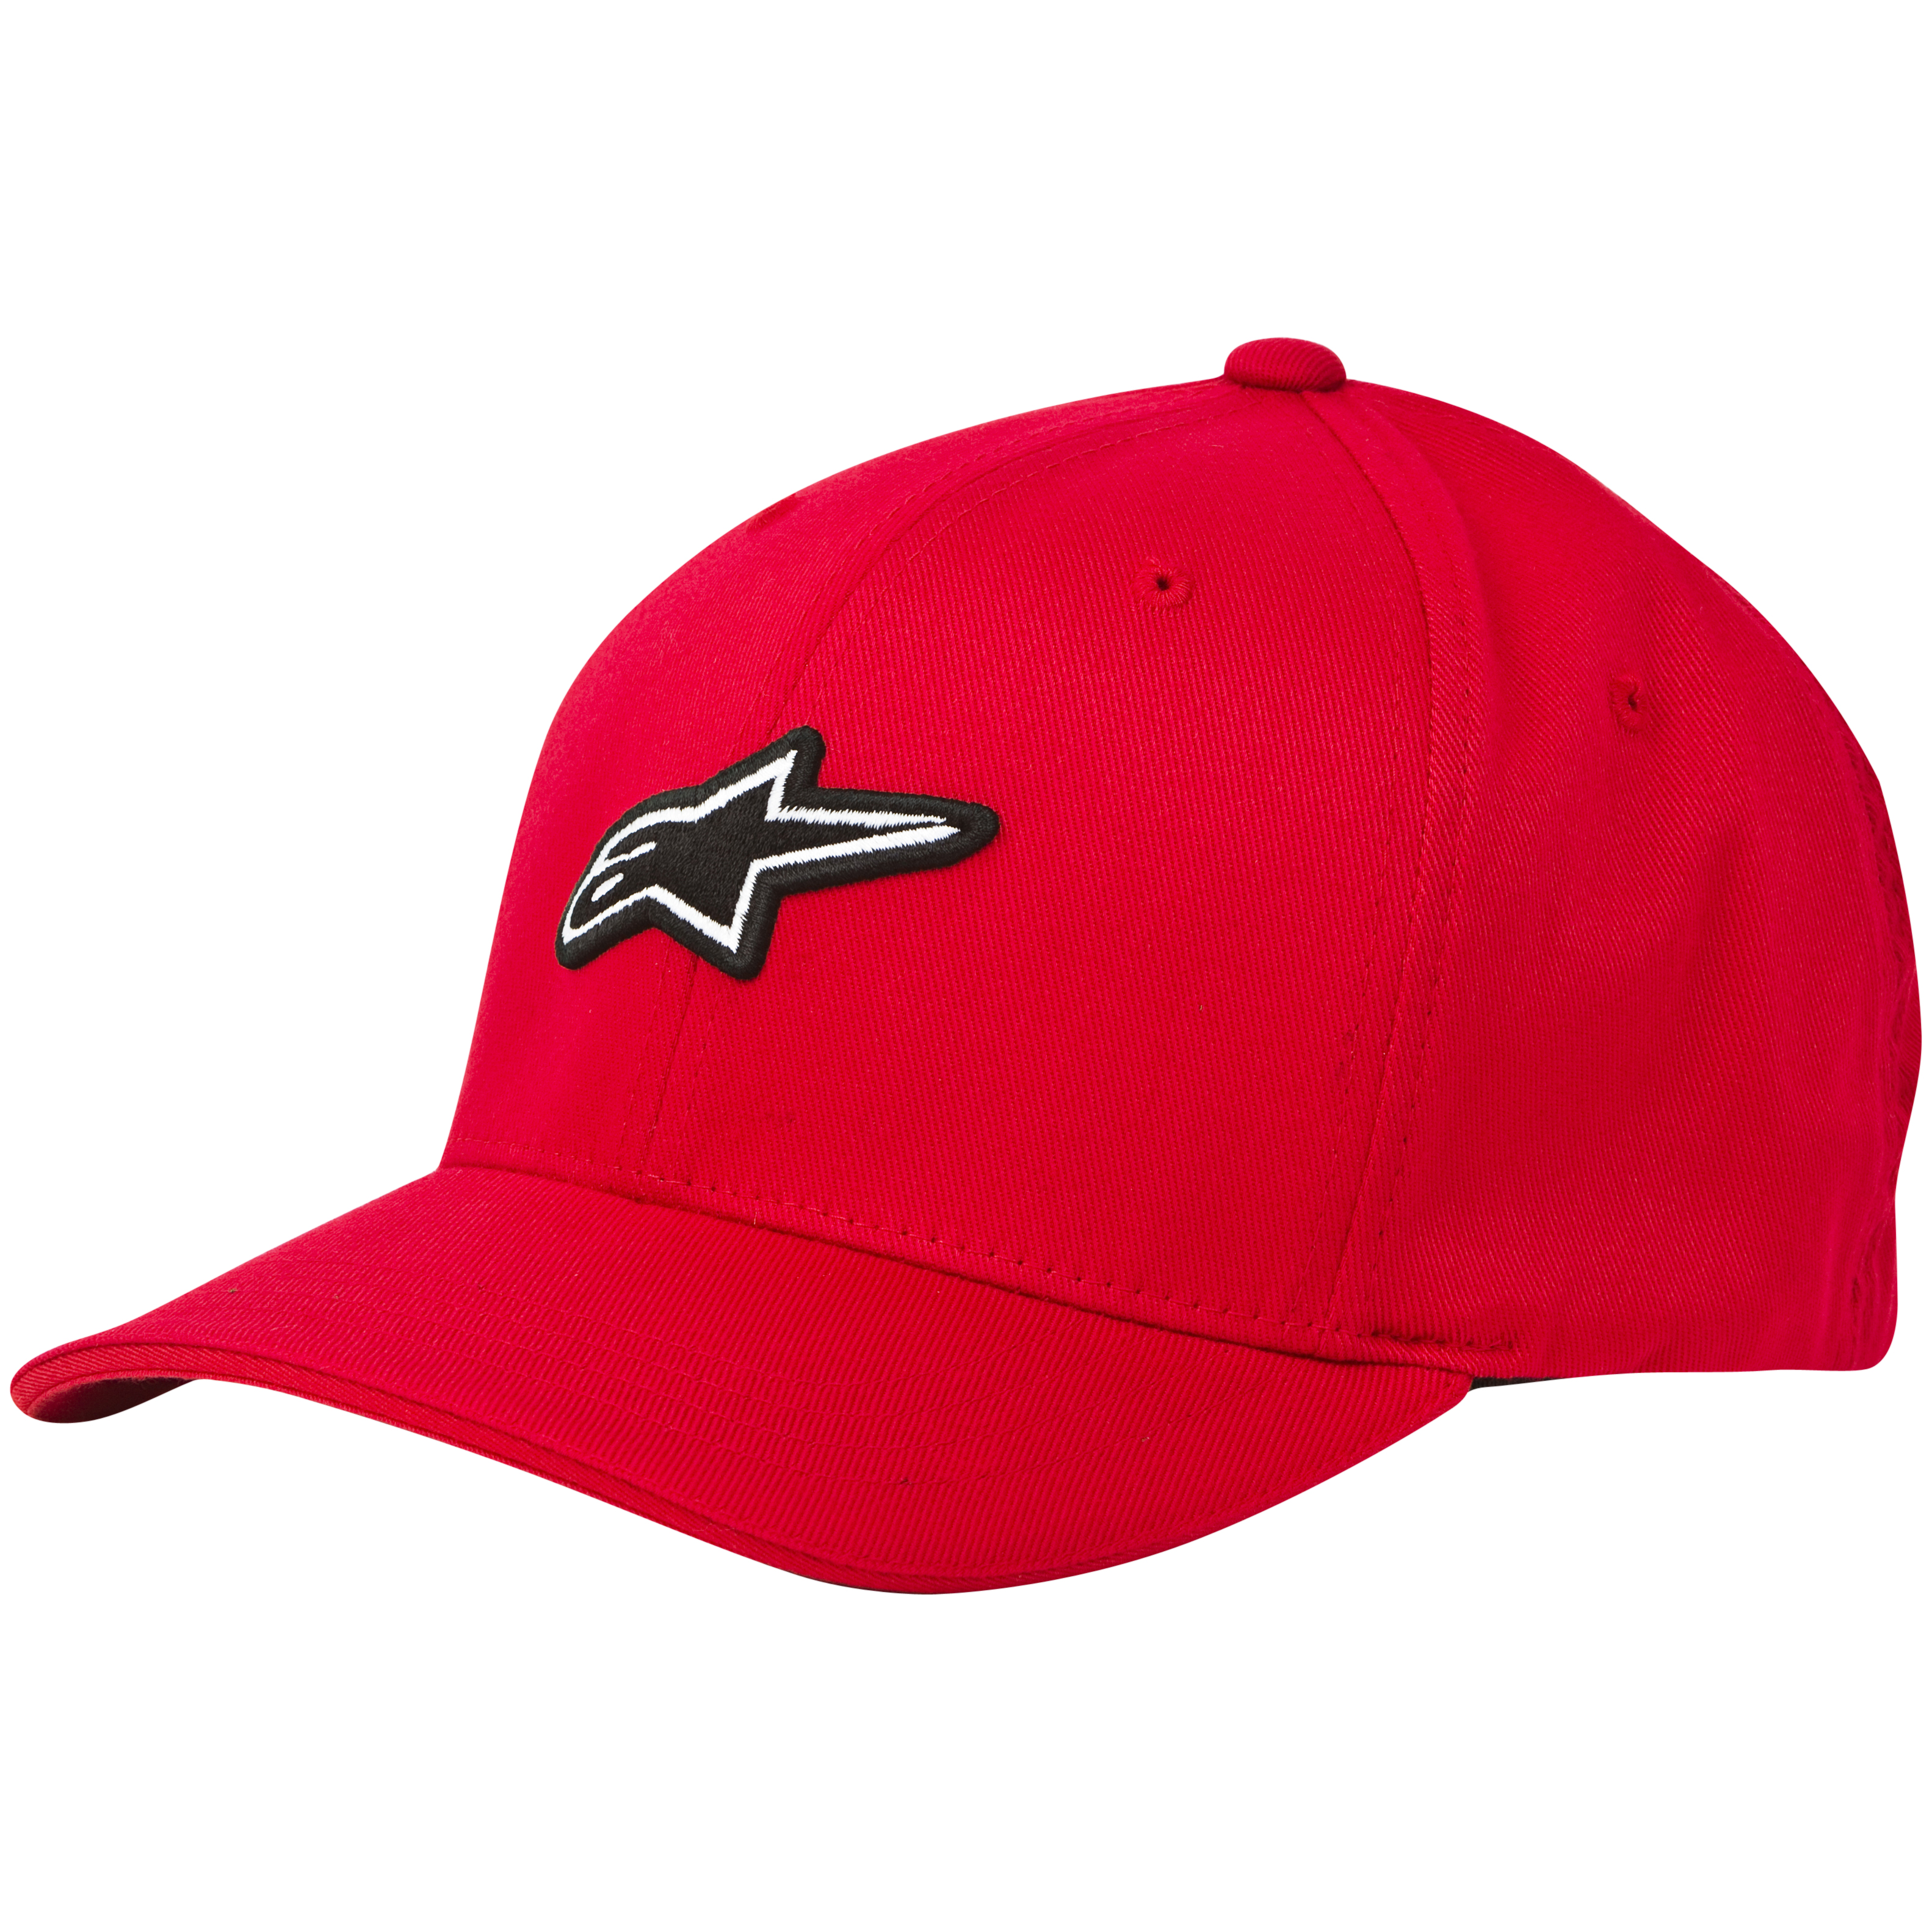 Alpinestar Alpinestars Raised Flexfit Hat - Red